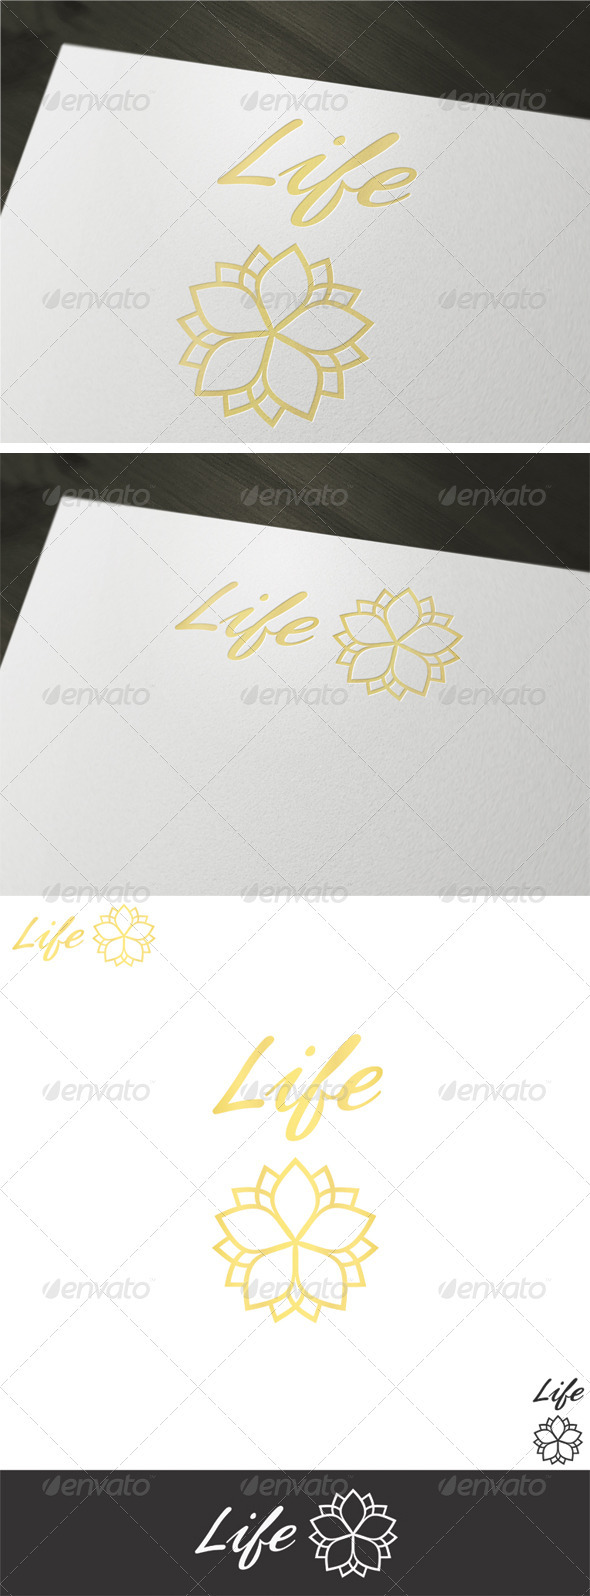 Graphic River Life Logo Template Logo Templates -  Abstract  Vector 2023917